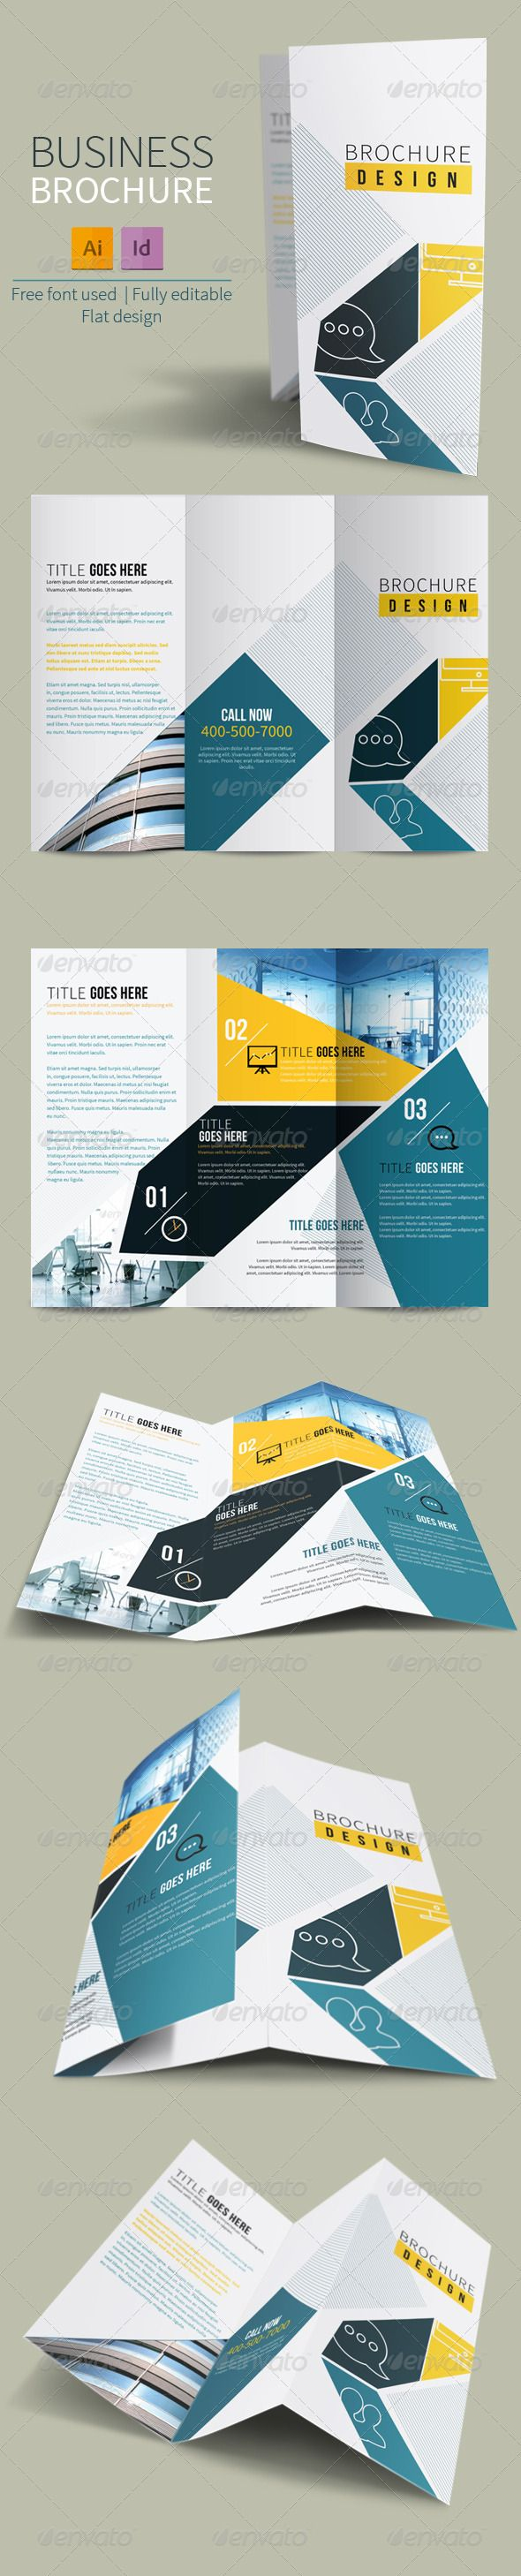 Trifold Brochure for Business - Informational Brochures